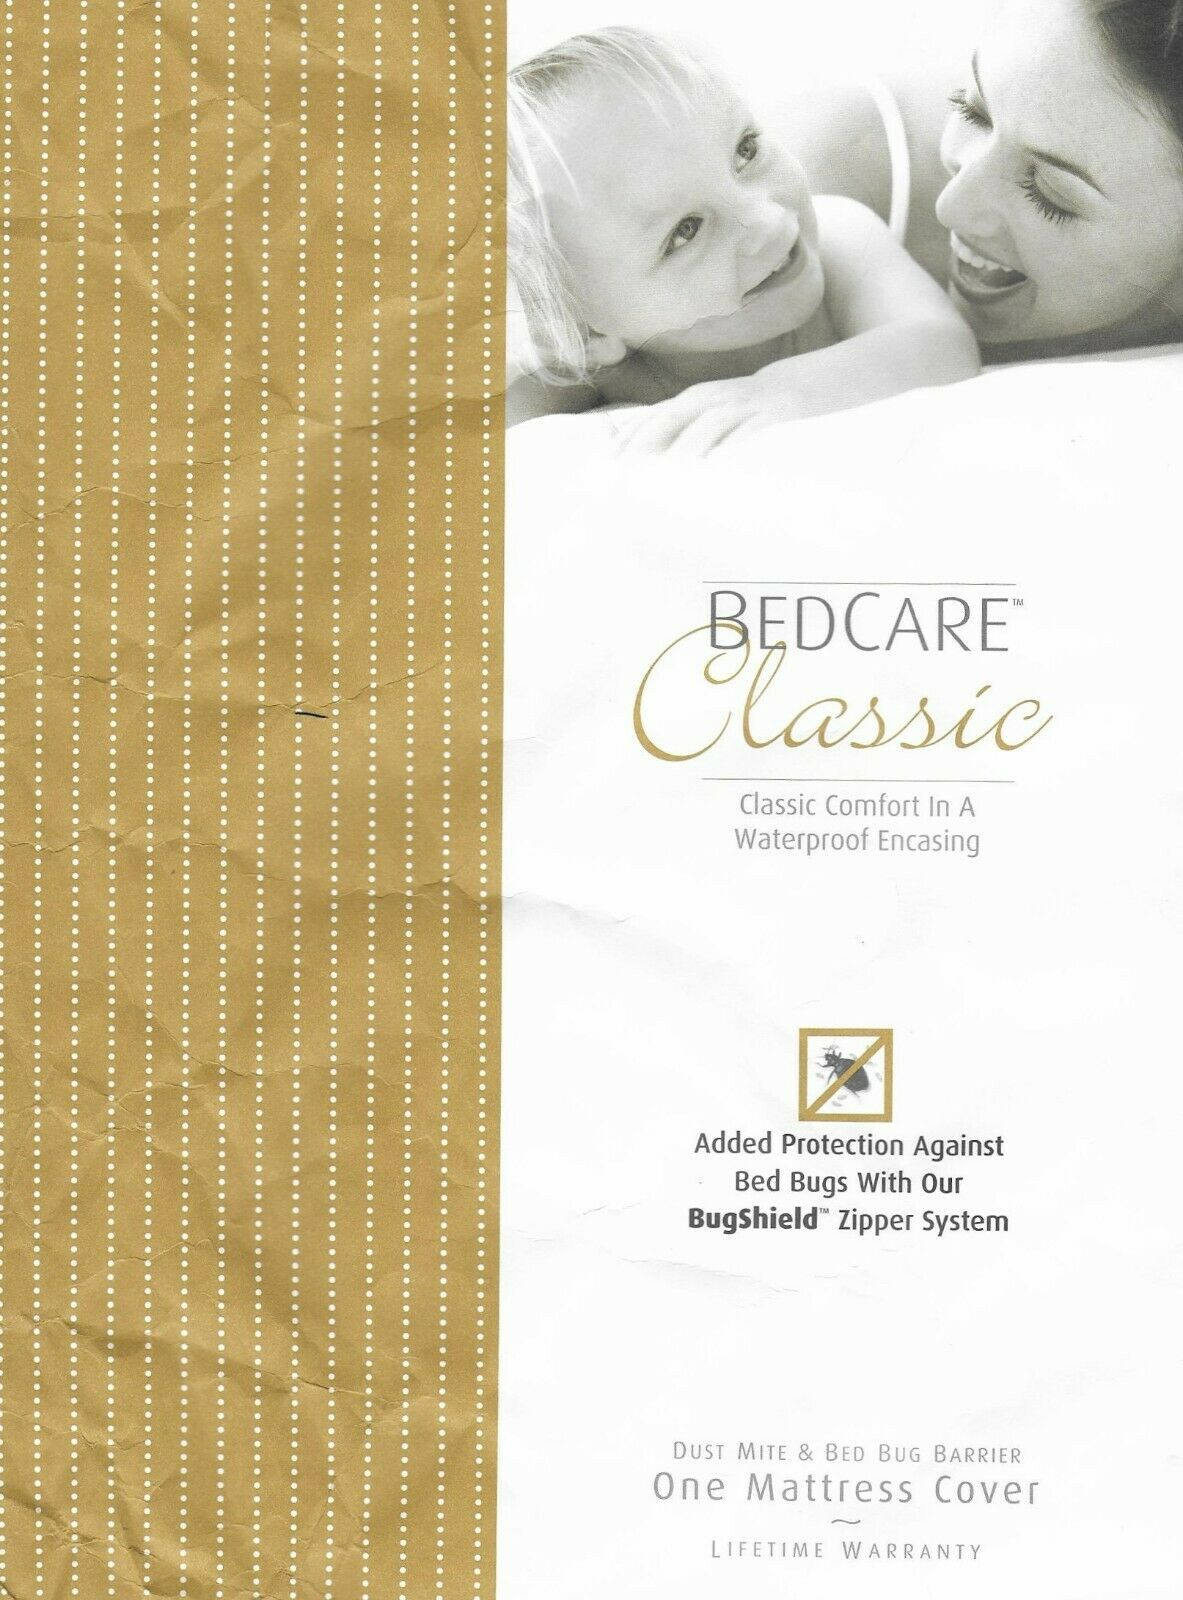 BedCare Classic Allergen Mattress Encasing Full 9 in Dust Mite & Bed Bug Barrier